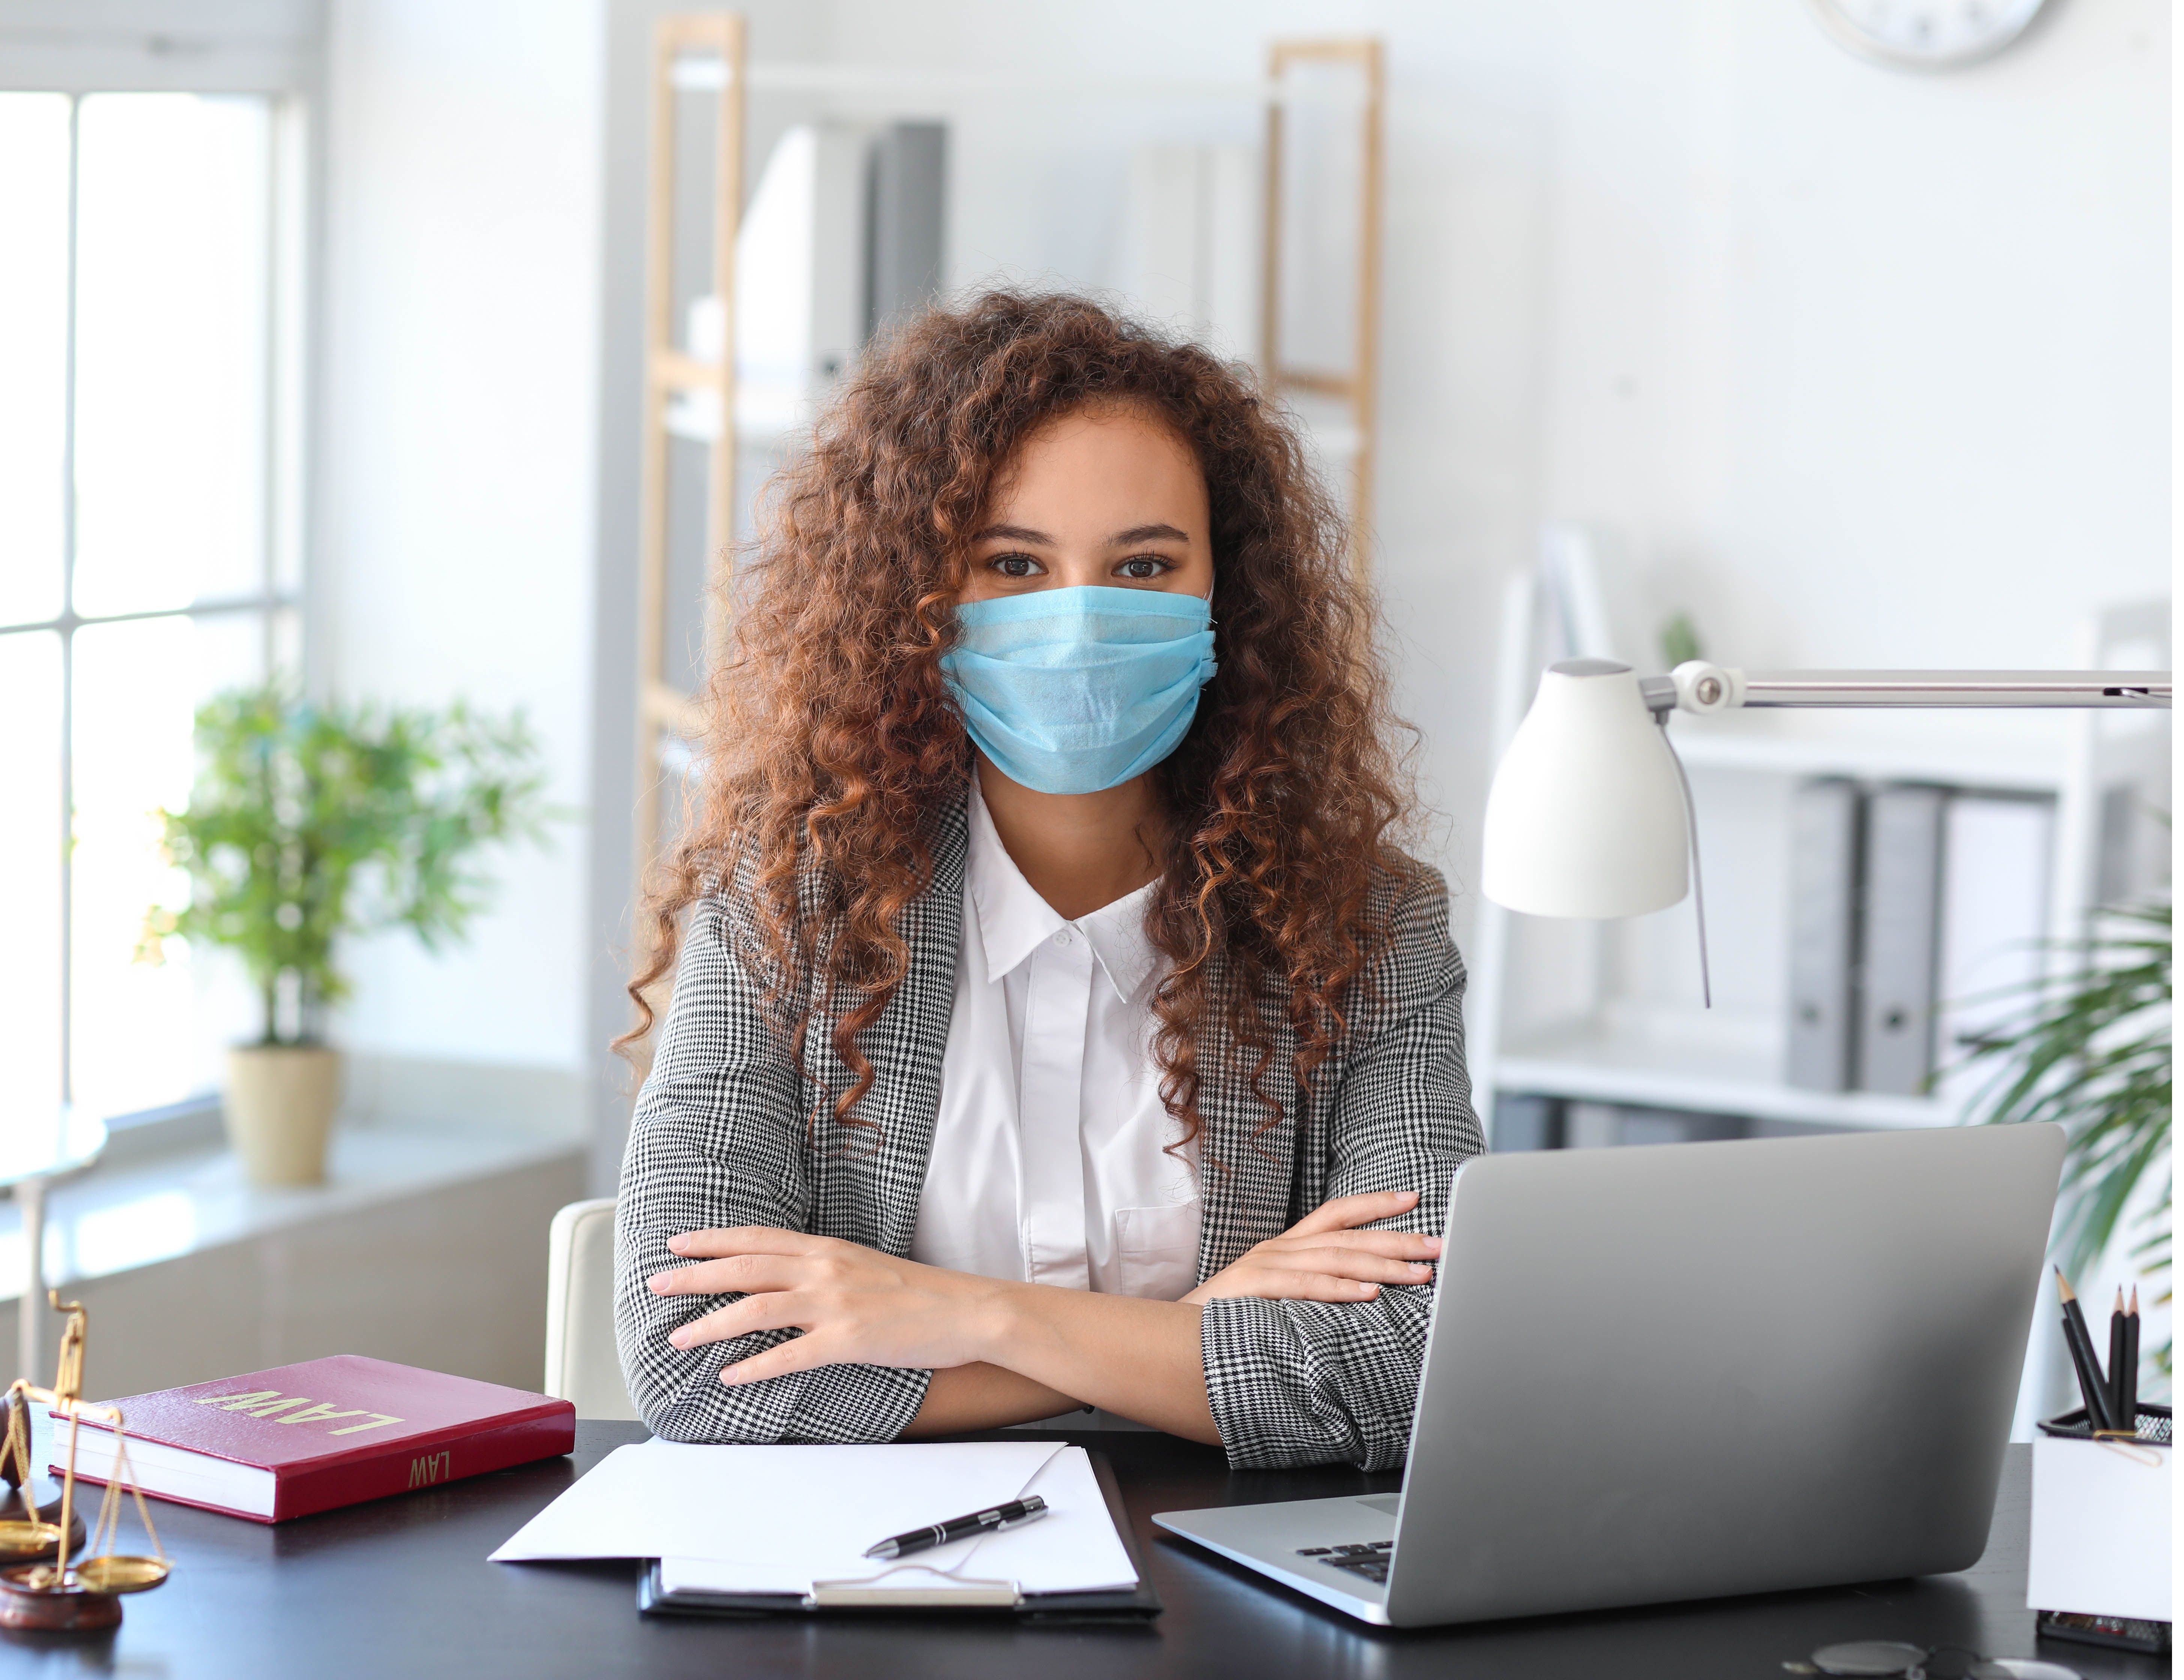 Woman Wearing a Mask Working in the Office